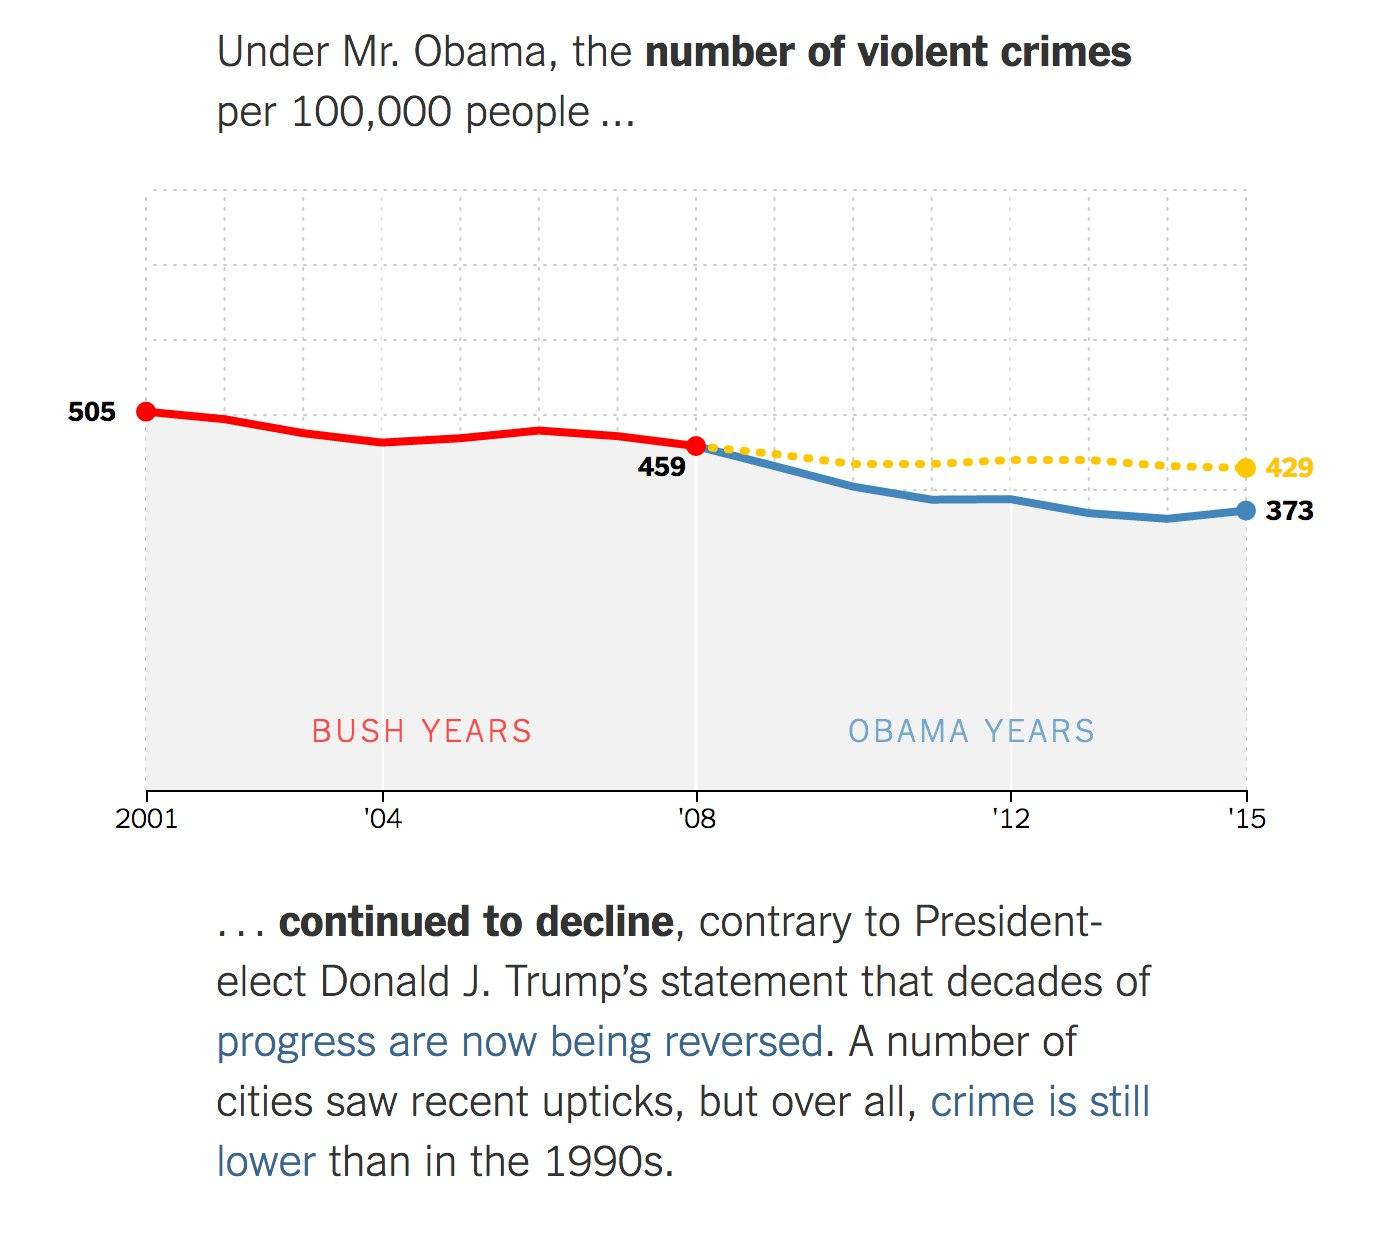 You Draw It: What Got Better or Worse During Obama's Presidency Great @nytimes interactive #ddj https://t.co/li3INPbByp https://t.co/LarXOFivVY